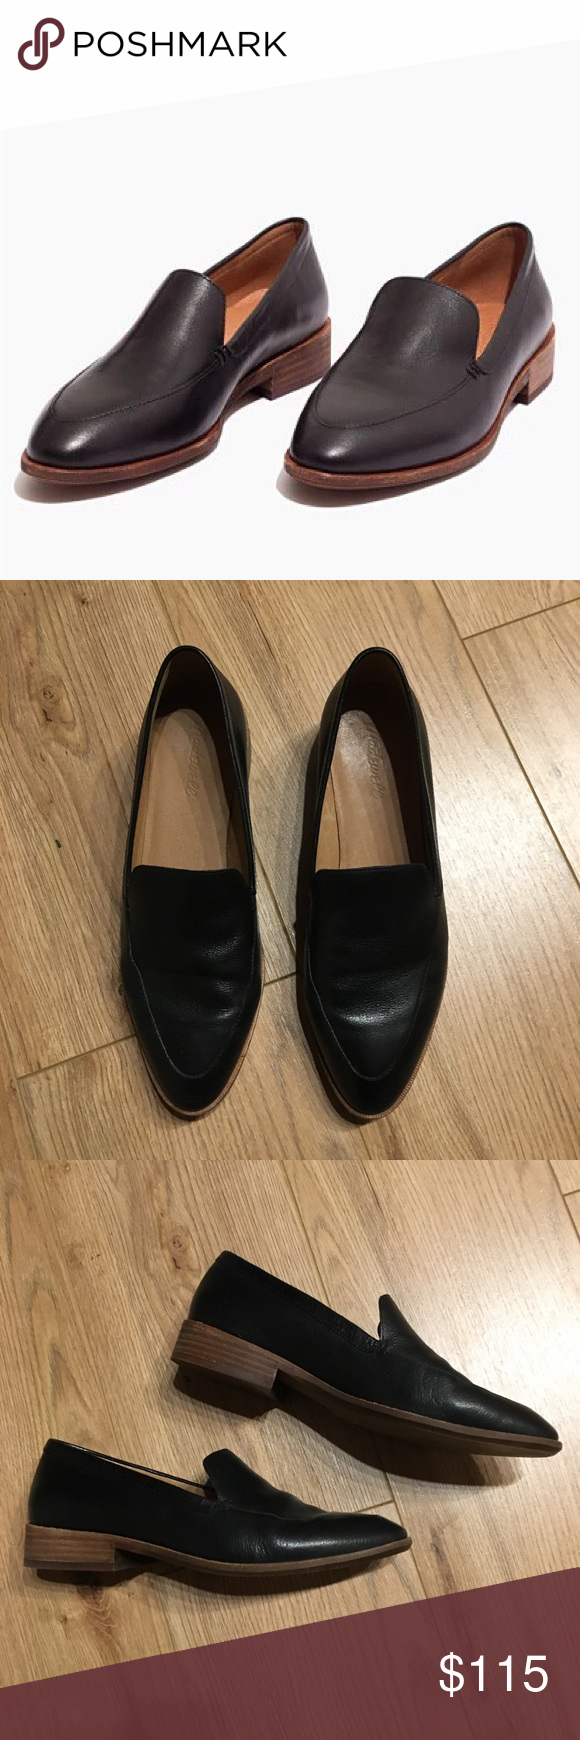 48b367dc261 Madewell Frances Loafers Worn once on carpet! Streamlined loafers in a  sleek new shape.